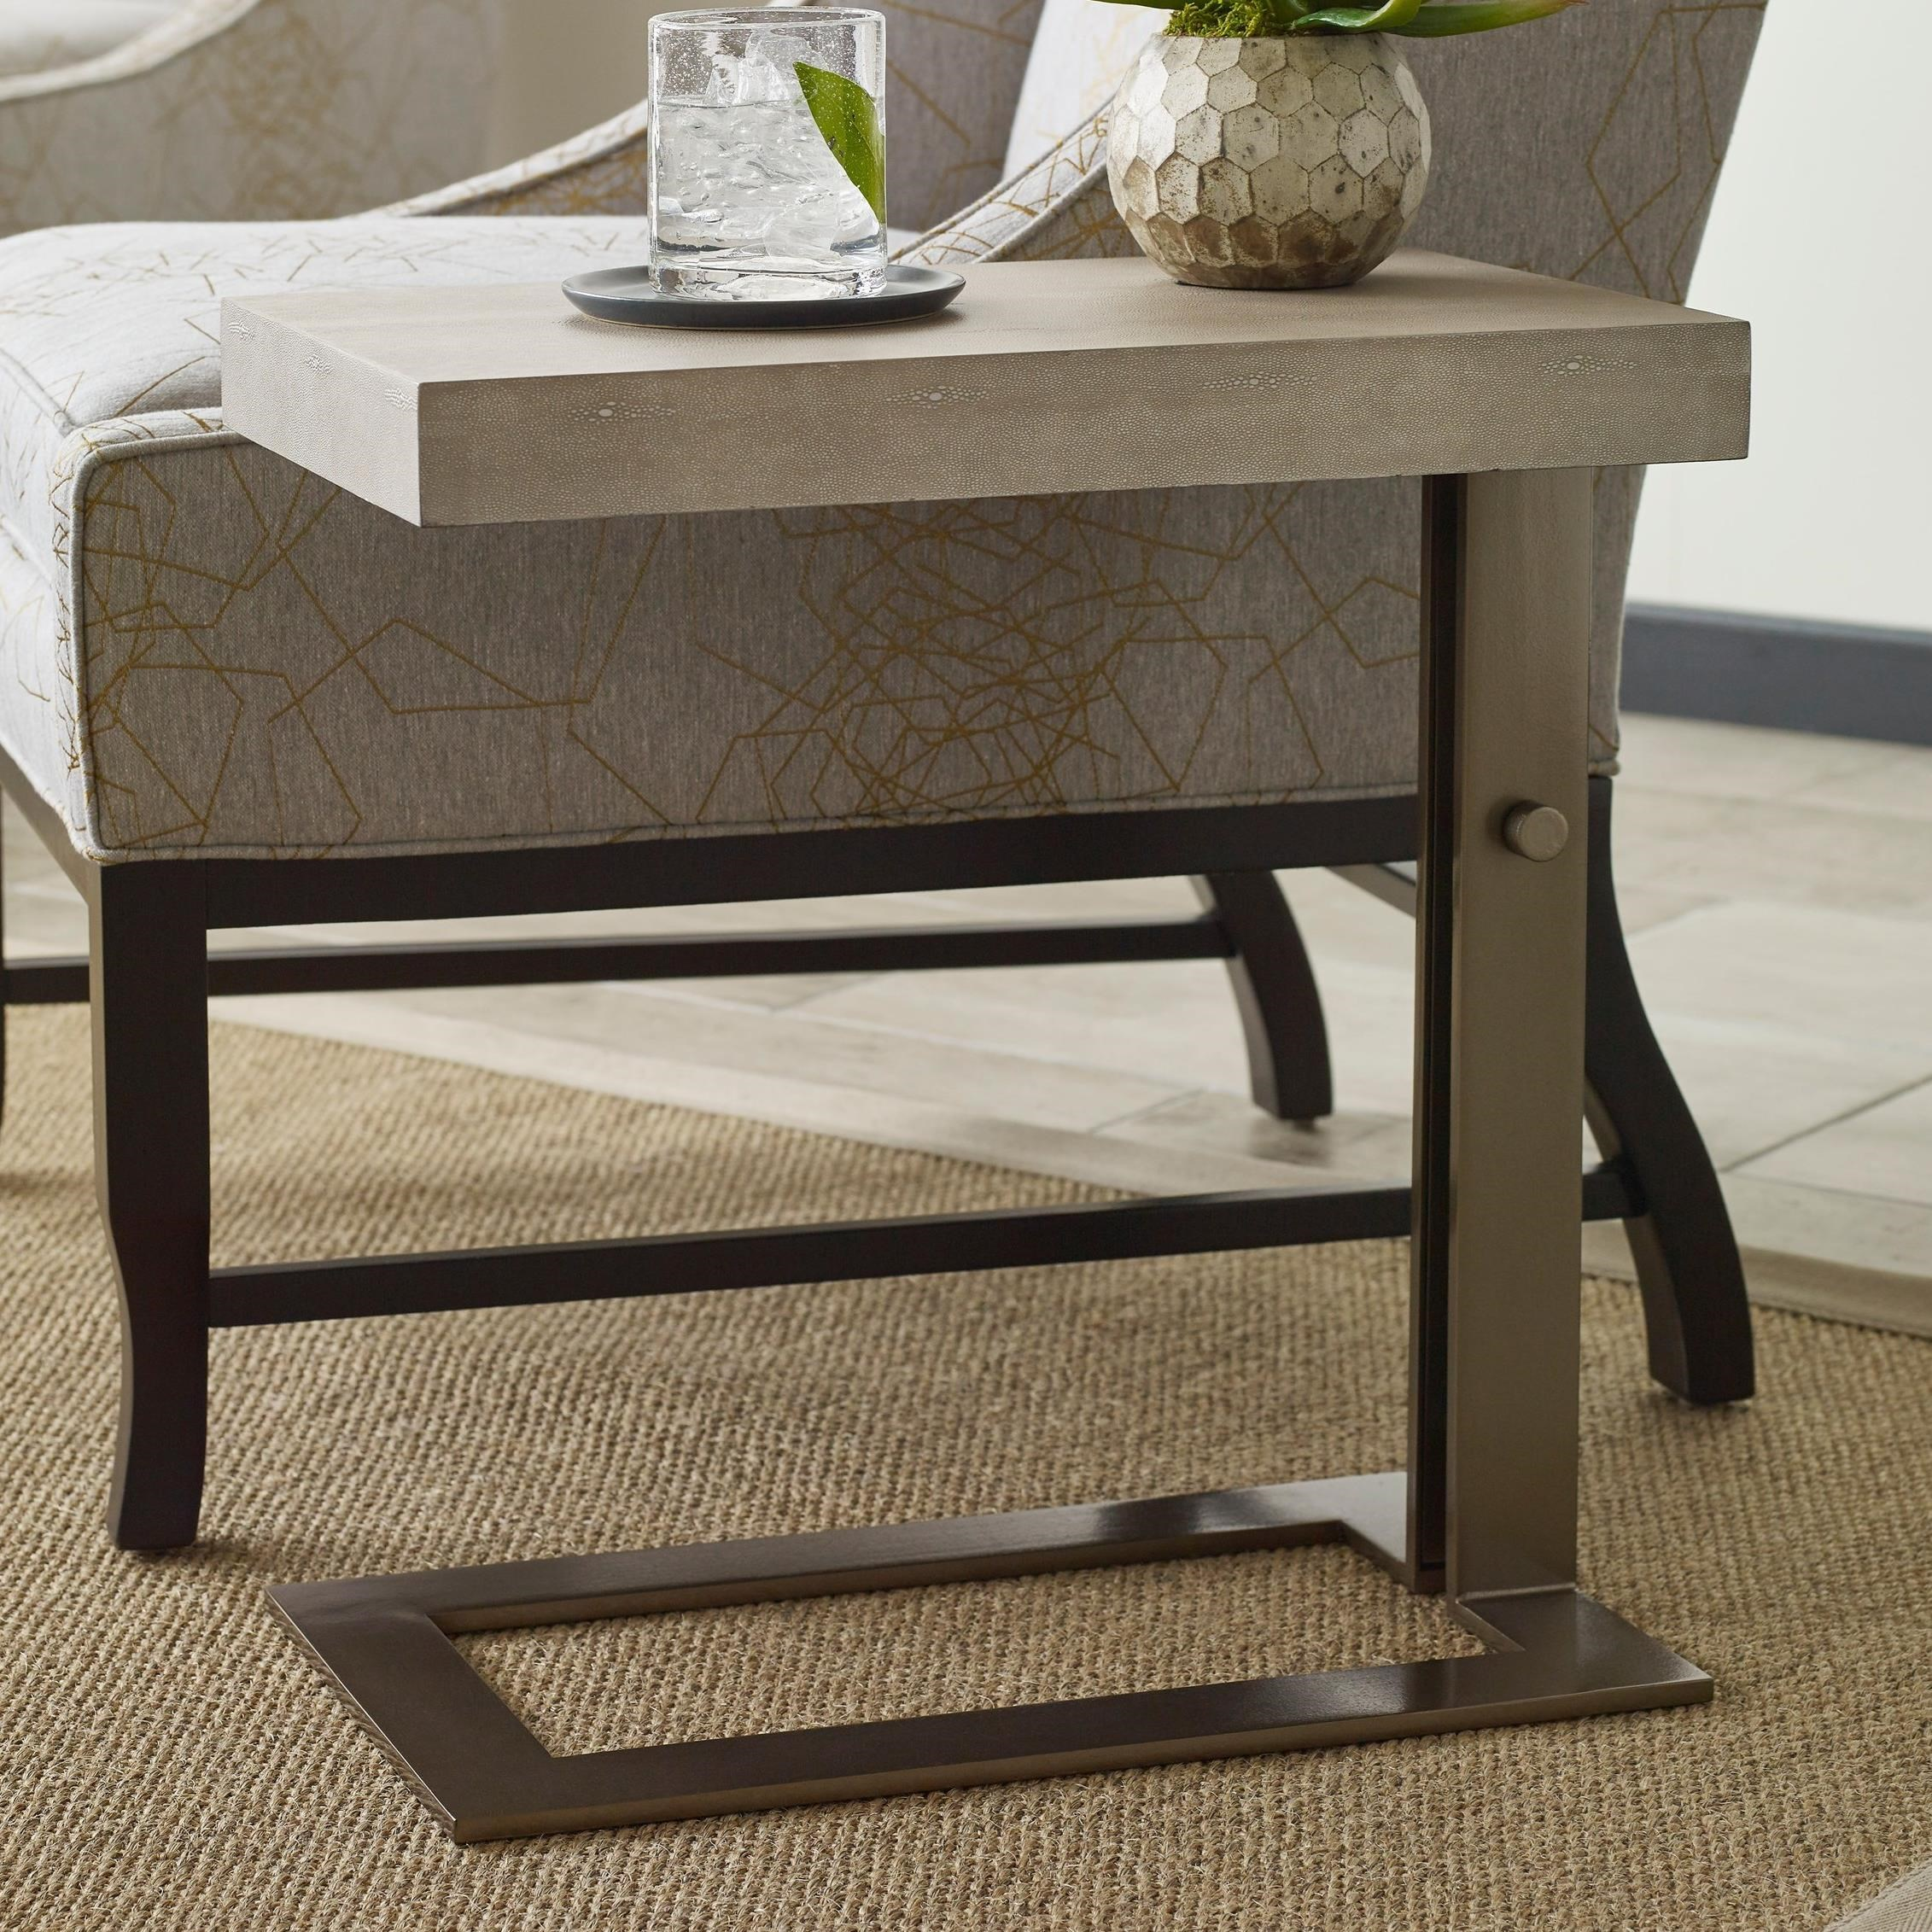 Blaine chairside table with adjustable base by american drew by american drew blaine chairside table with adjustable base geotapseo Gallery